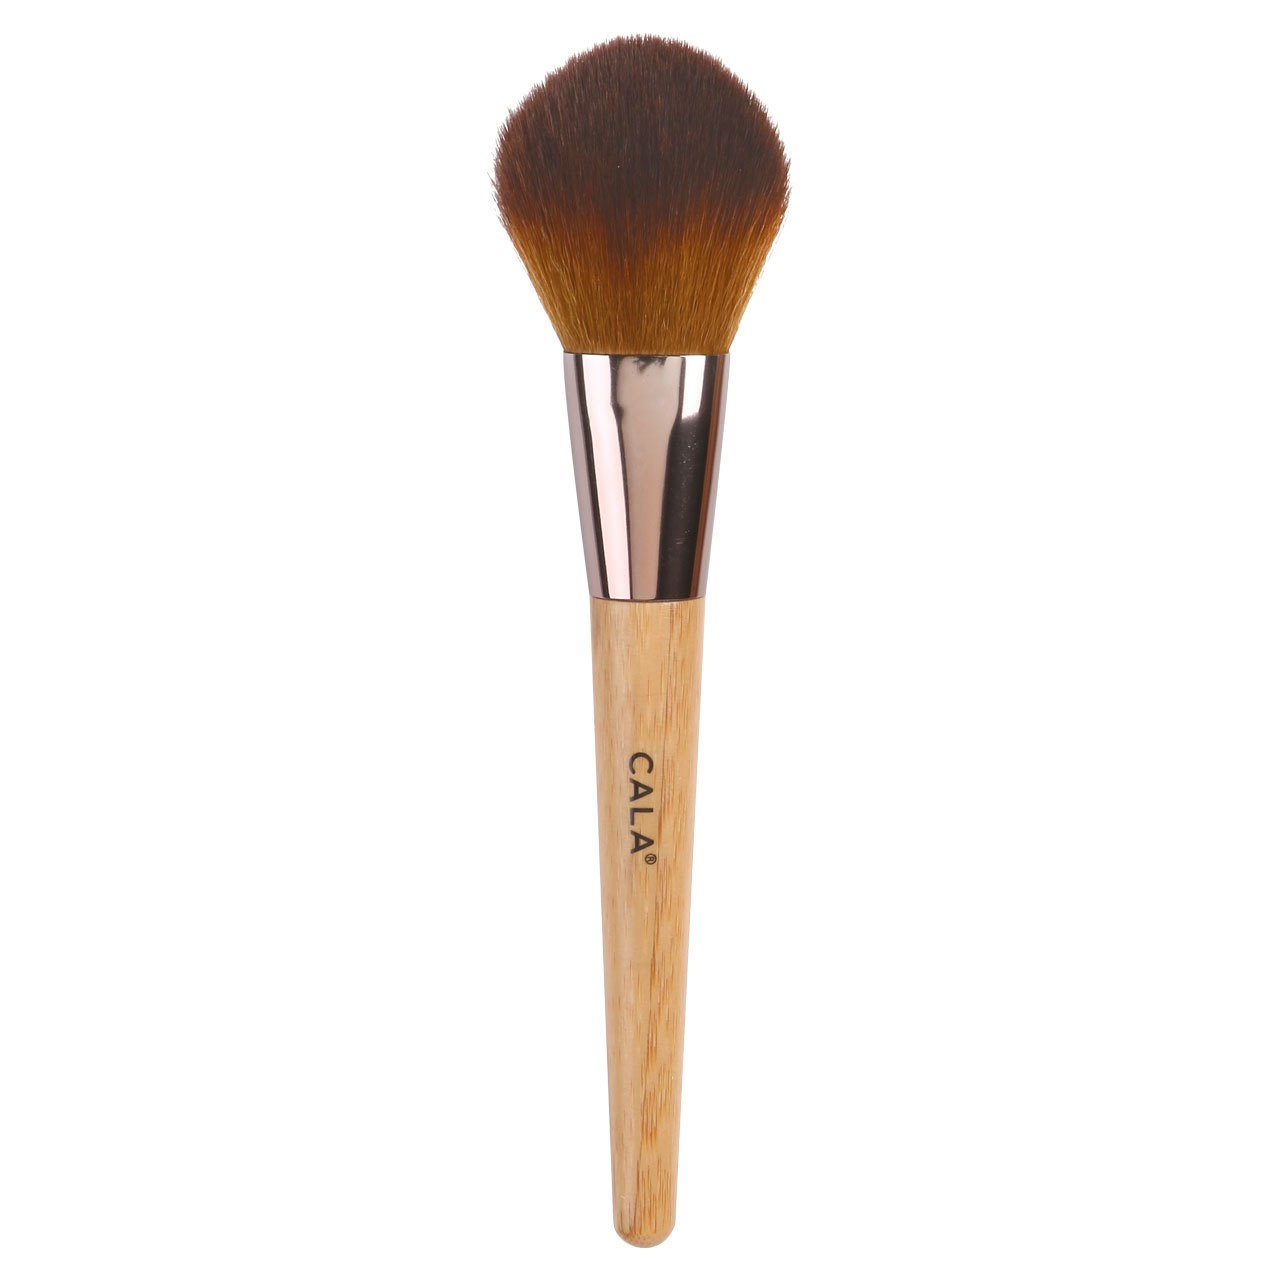 Puder-Pinsel - Bamboo Powder Brush